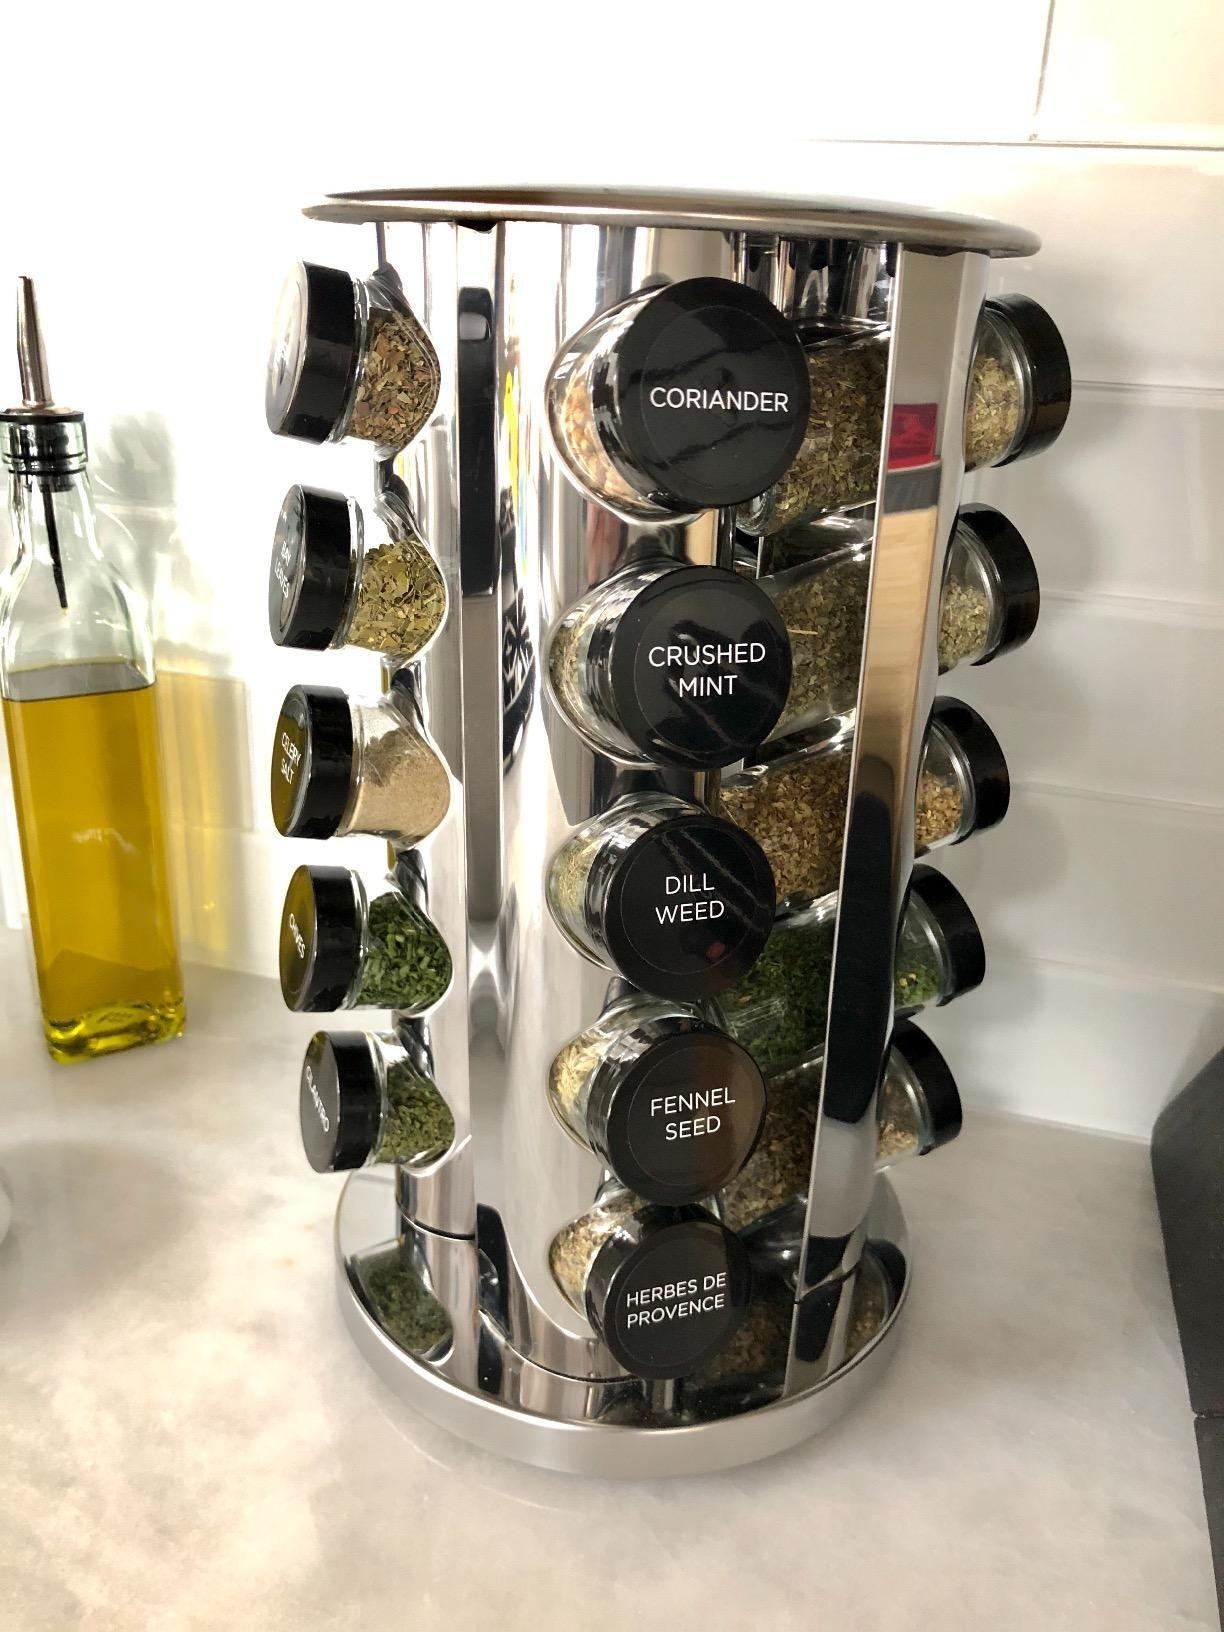 Mirrored spinning rack filled with spice jars with labeled black lids